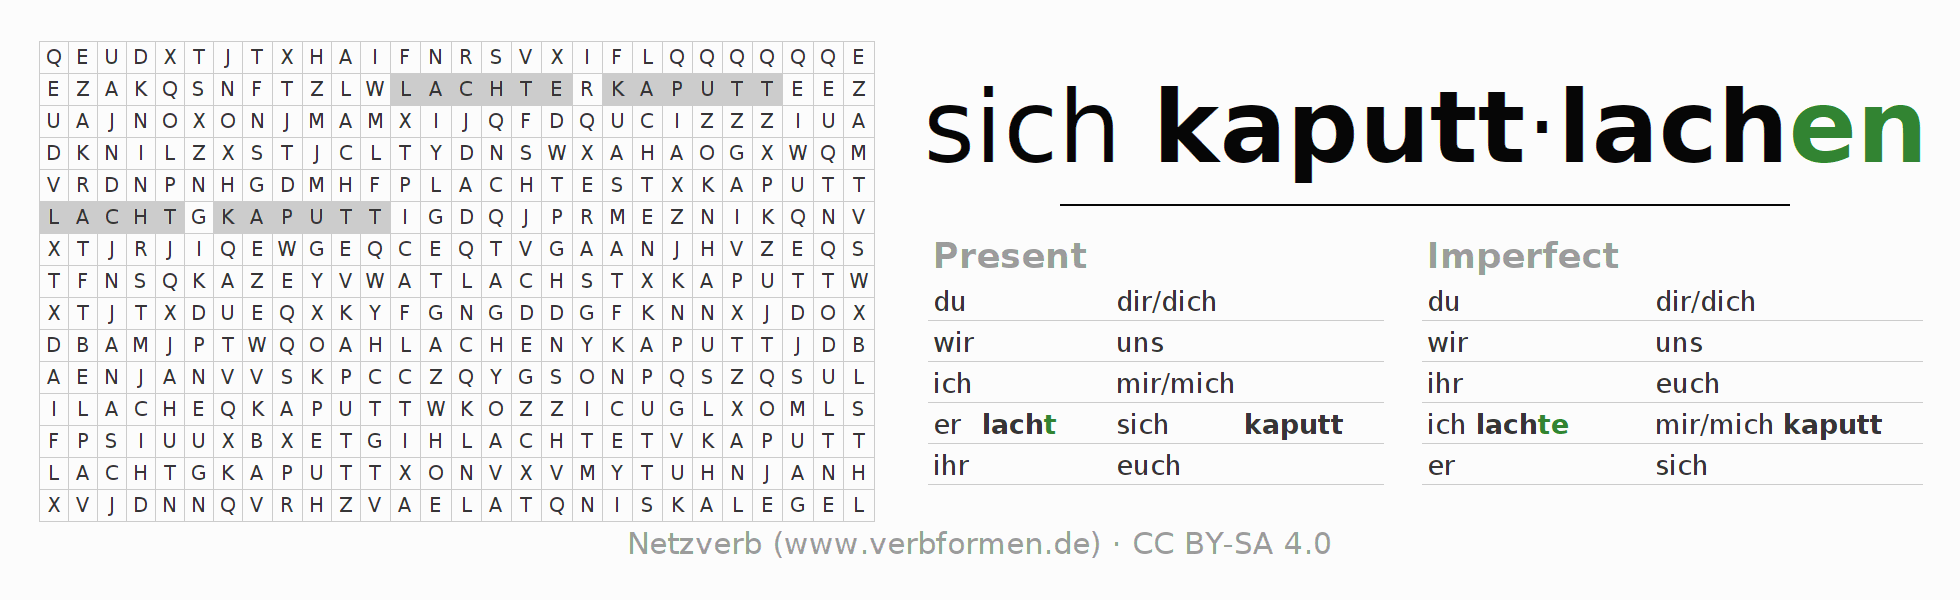 Word search puzzle for the conjugation of the verb sich kaputtlachen